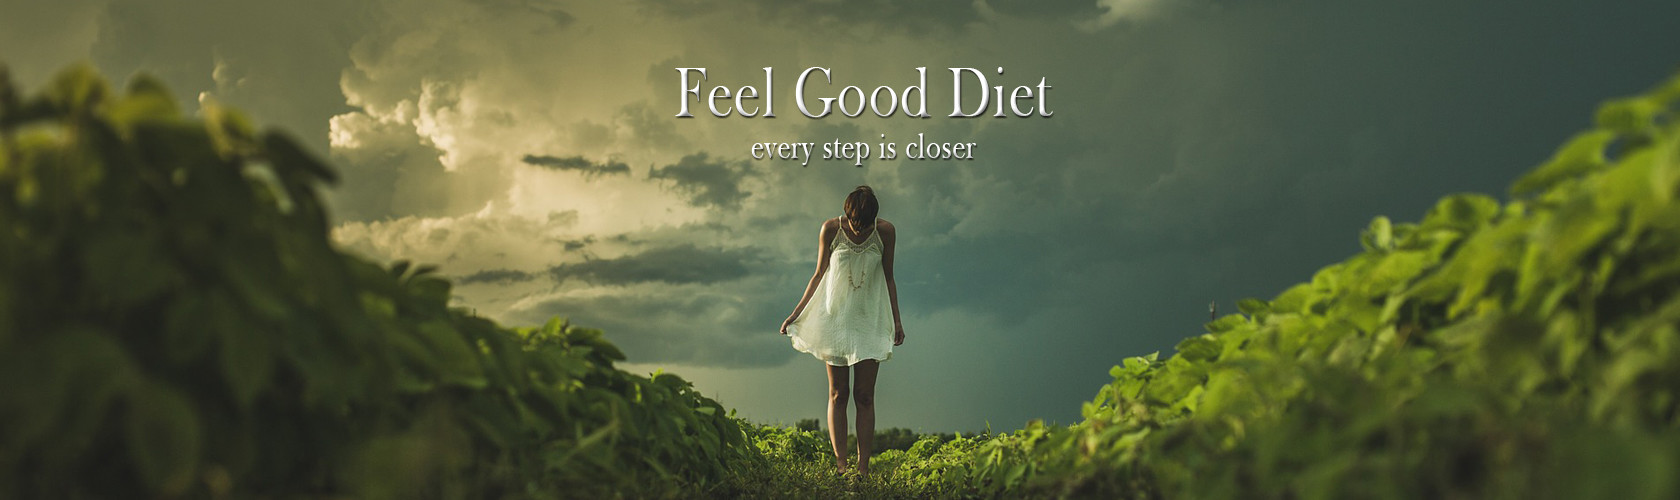 Feel Good Diet